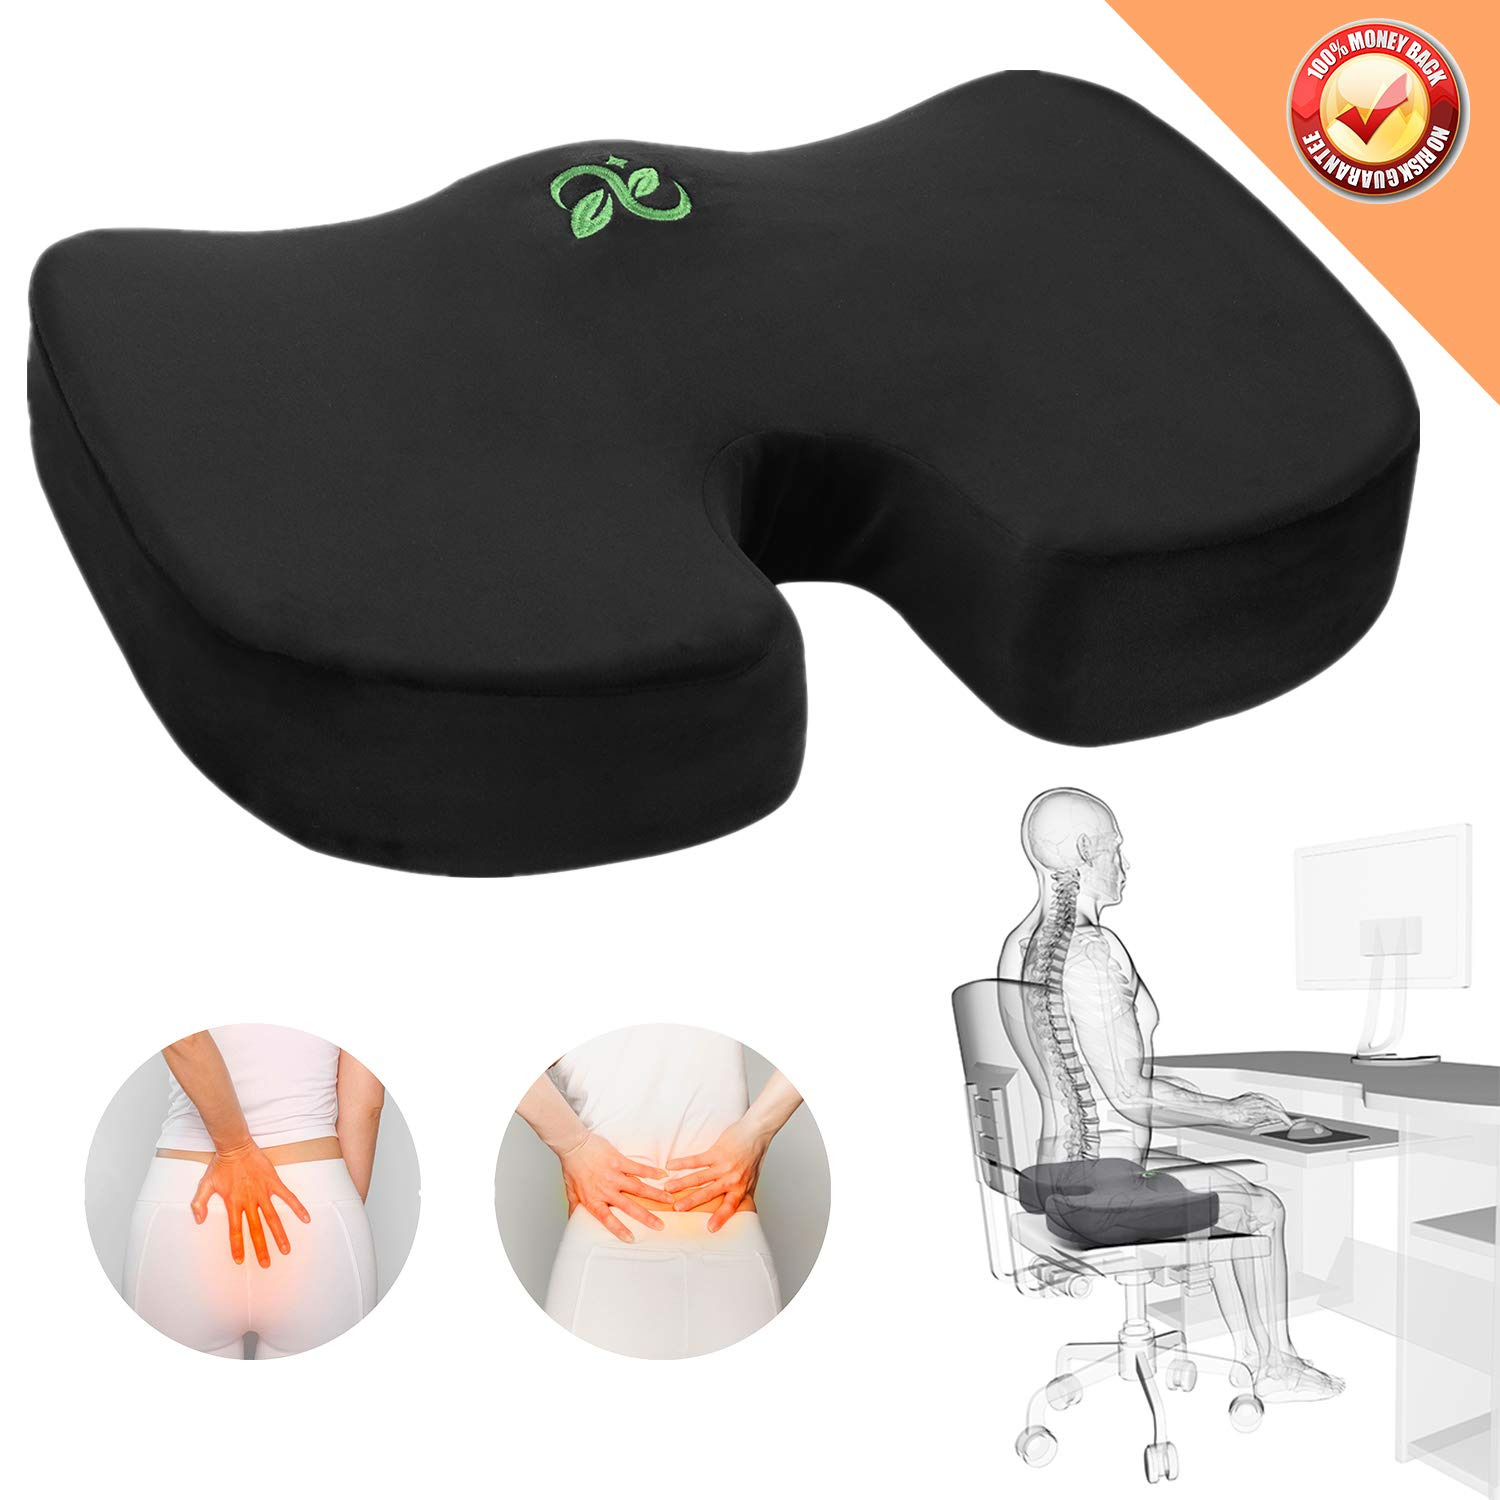 Coccyx Seat Cushion Orthopedic Memory Foam Car Seat Cushion